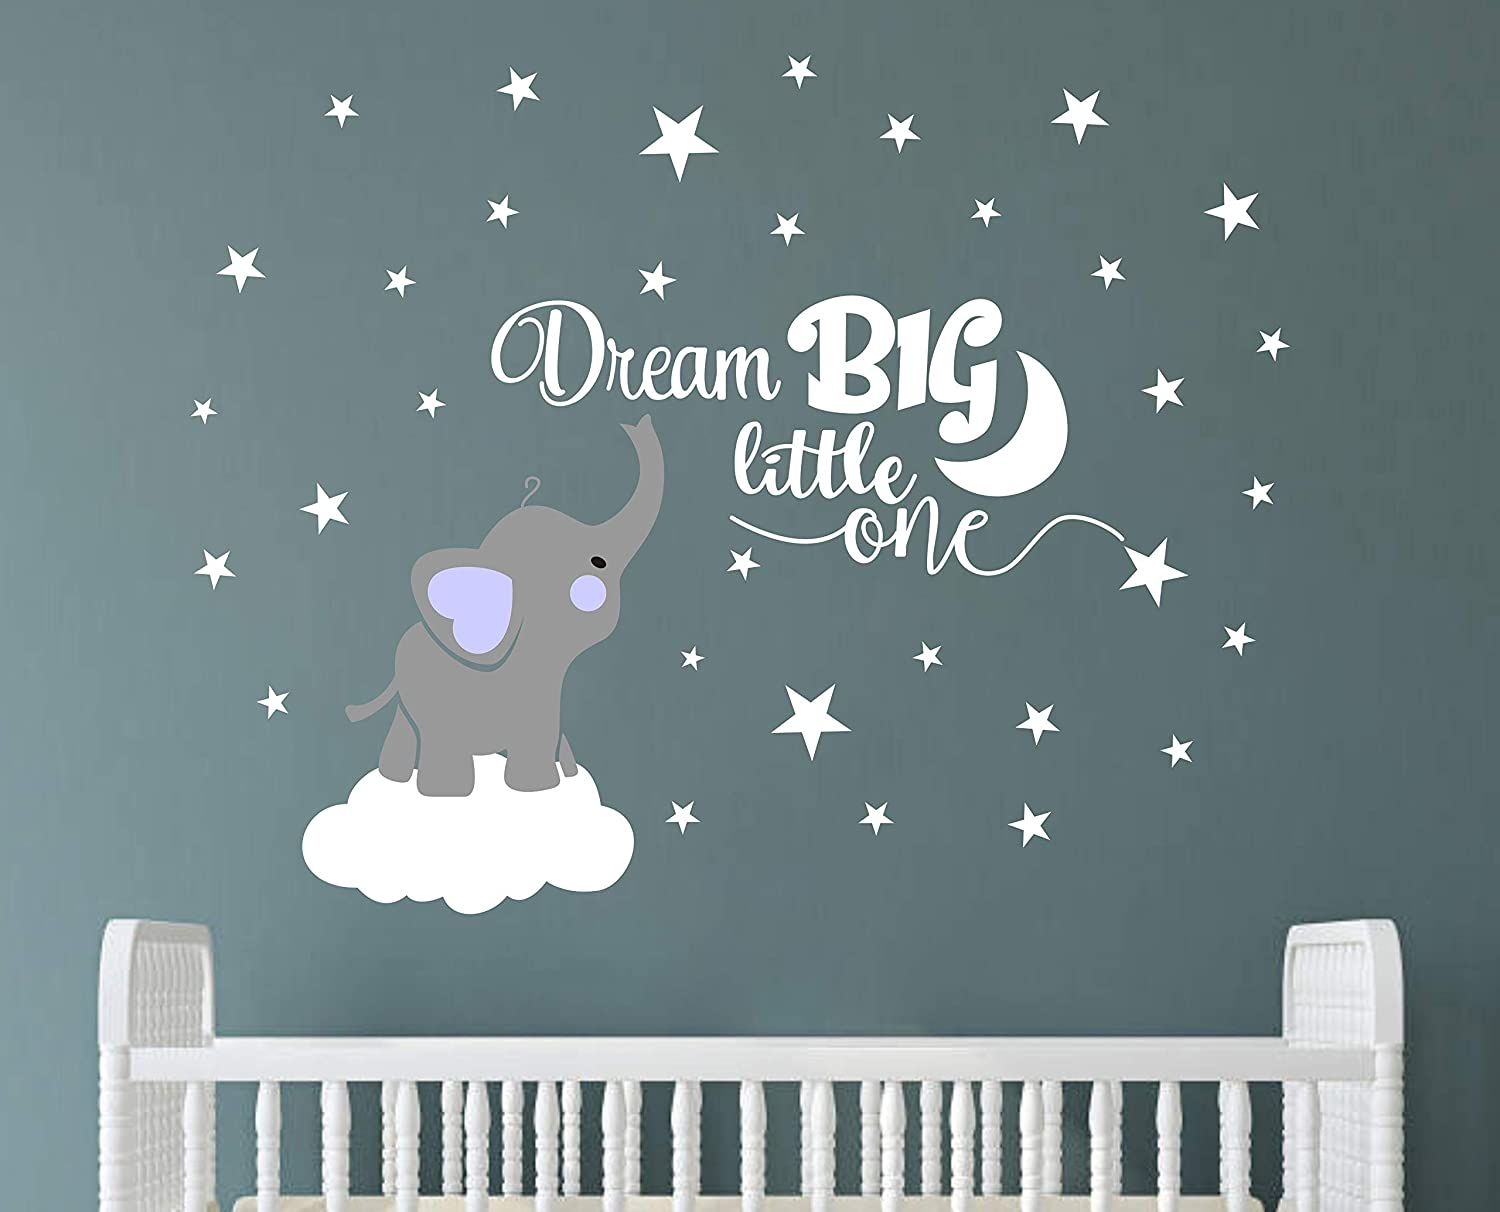 Dream Big Little One Elephant Wall Decal Quote Wall Stickers Baby Room Wall Decor Vinyl Wall Decals For Children Baby Kids Boy Girl Bedroom Nursery Decoration Y03 Bule Boy Amazon Ca Home Kitchen